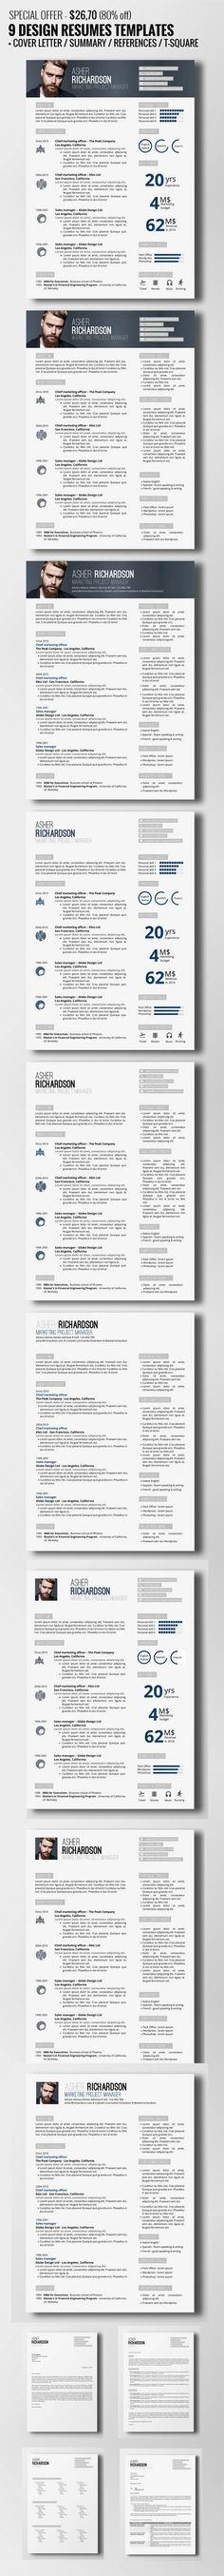 435 best Resume images on Pinterest Resume design, Design resume - most creative resumes